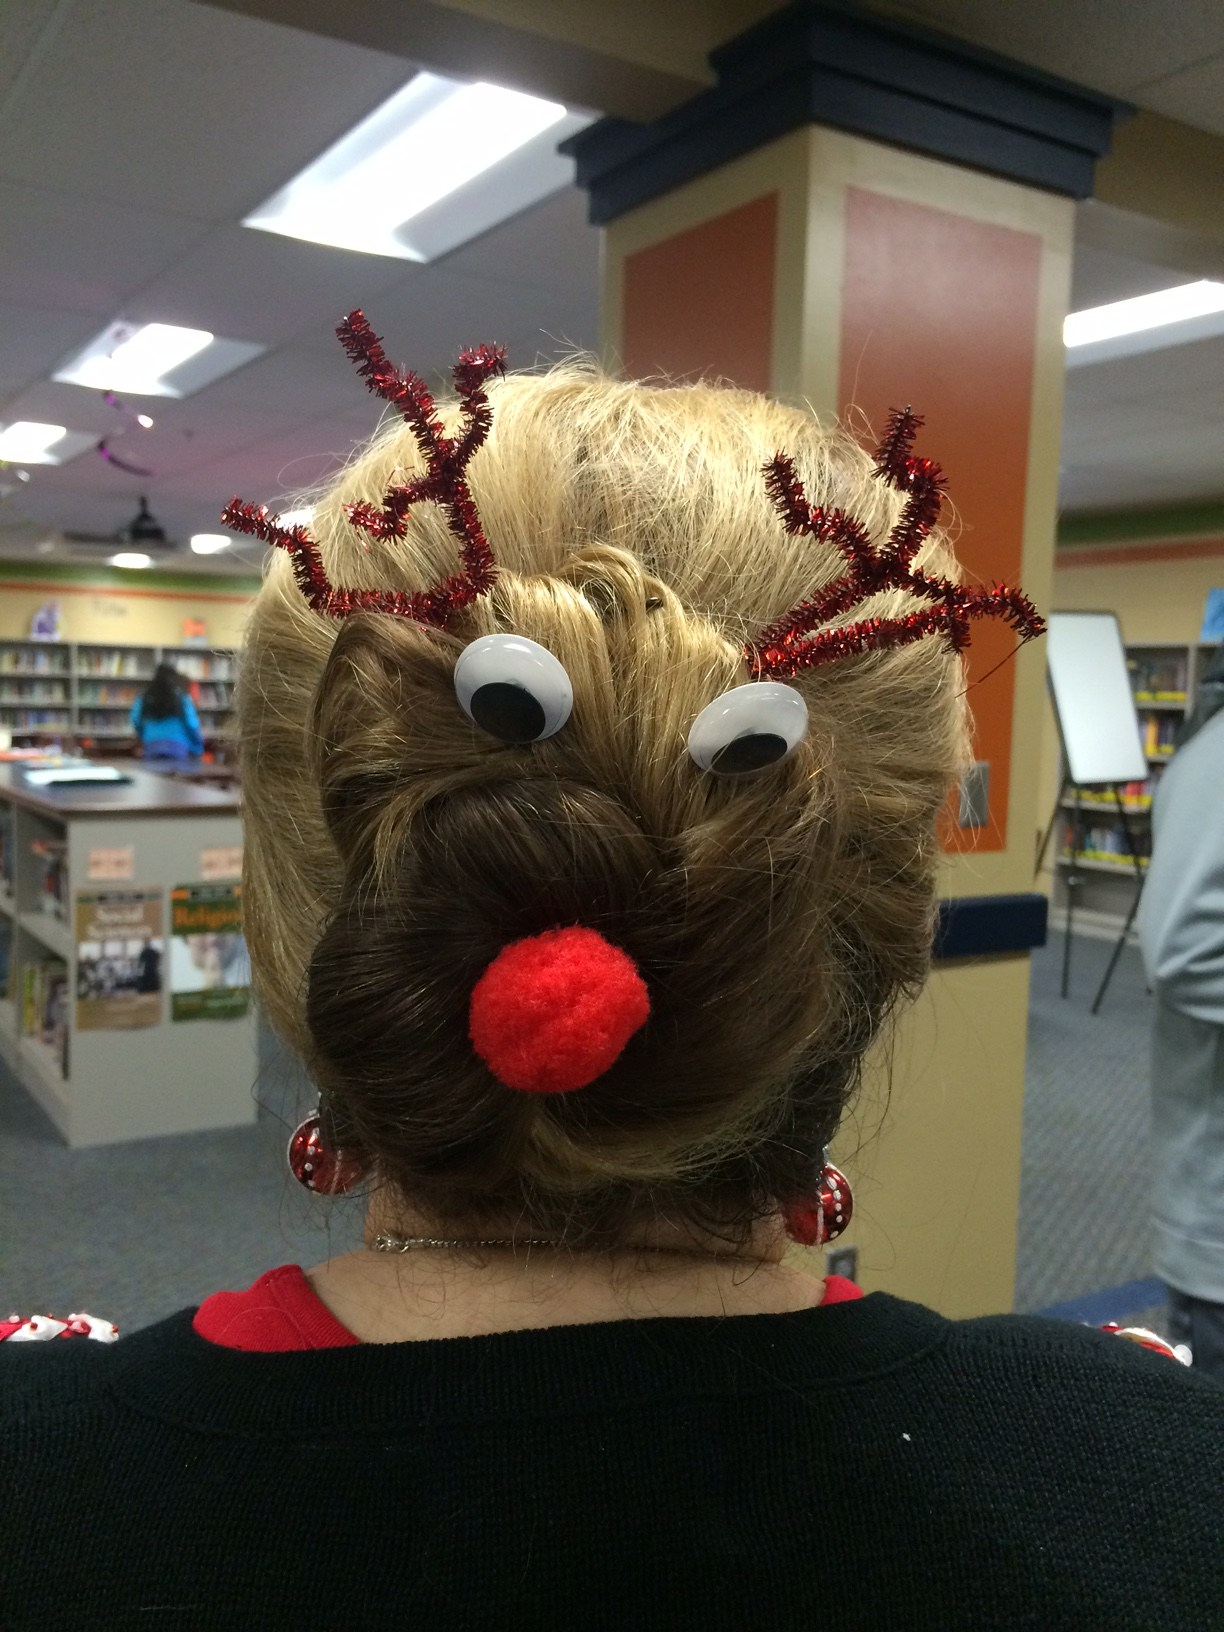 Reindeer Hair in the Library